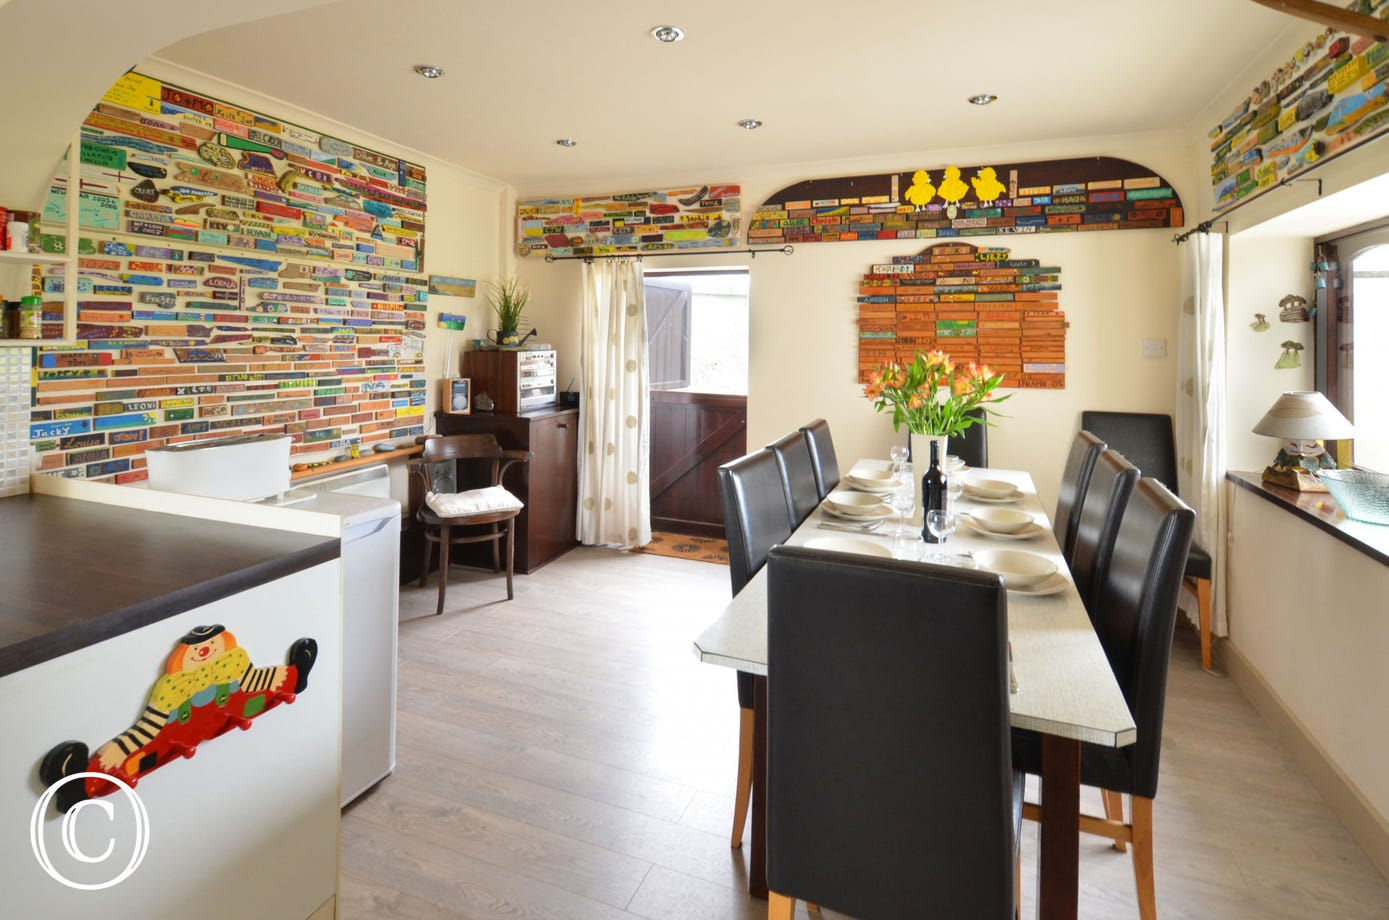 A stunning room with unusual artwork on the wall created by family and past guests